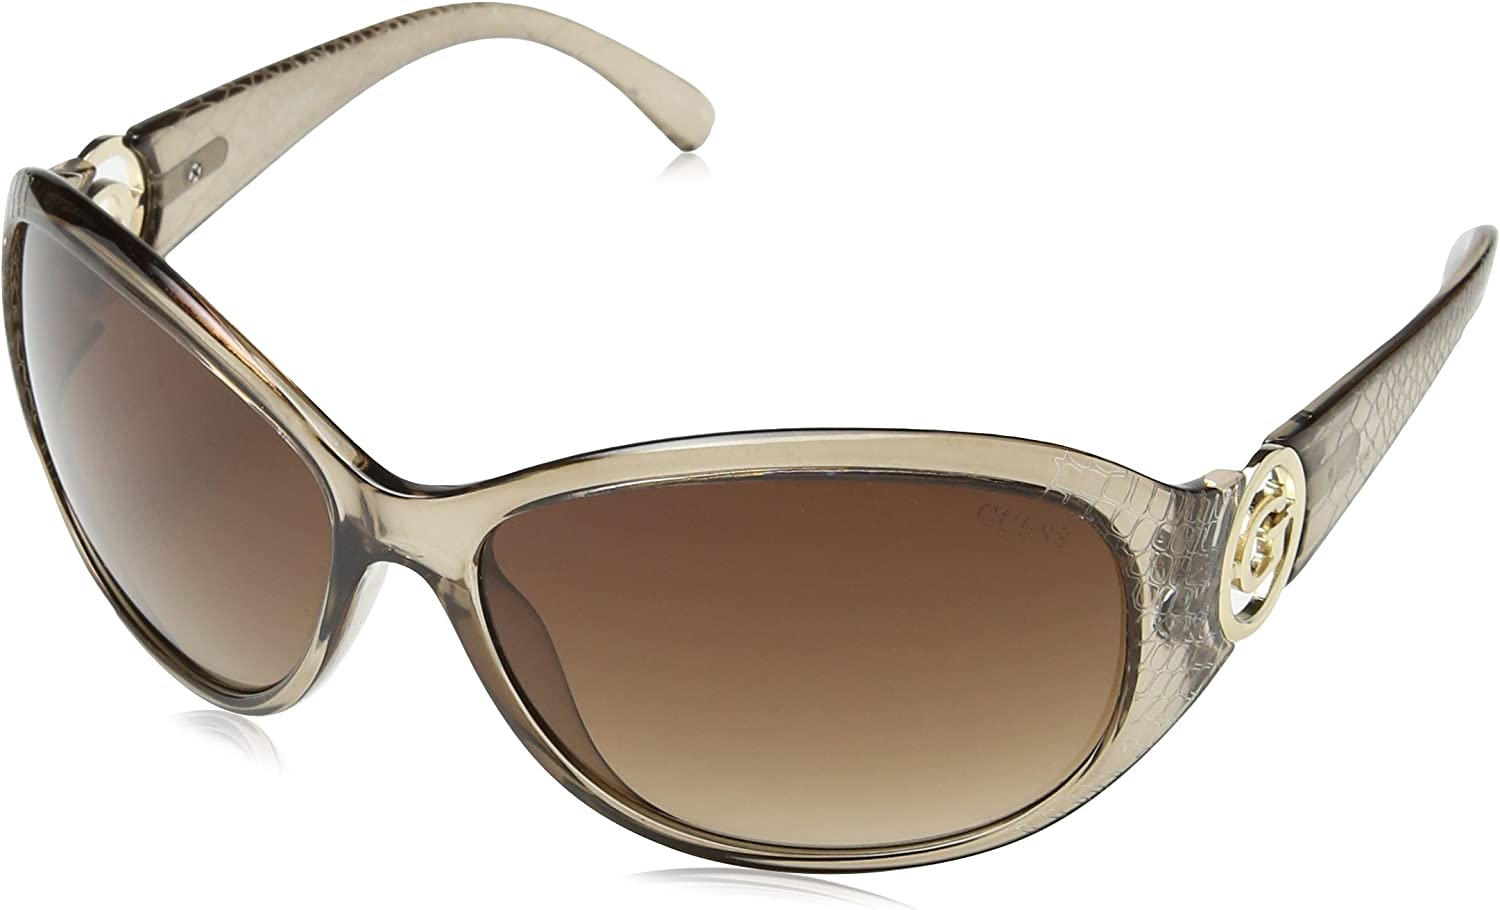 GUESS Women's Acetate Rectangle Shield Sunglasses CGRY34 65 mm